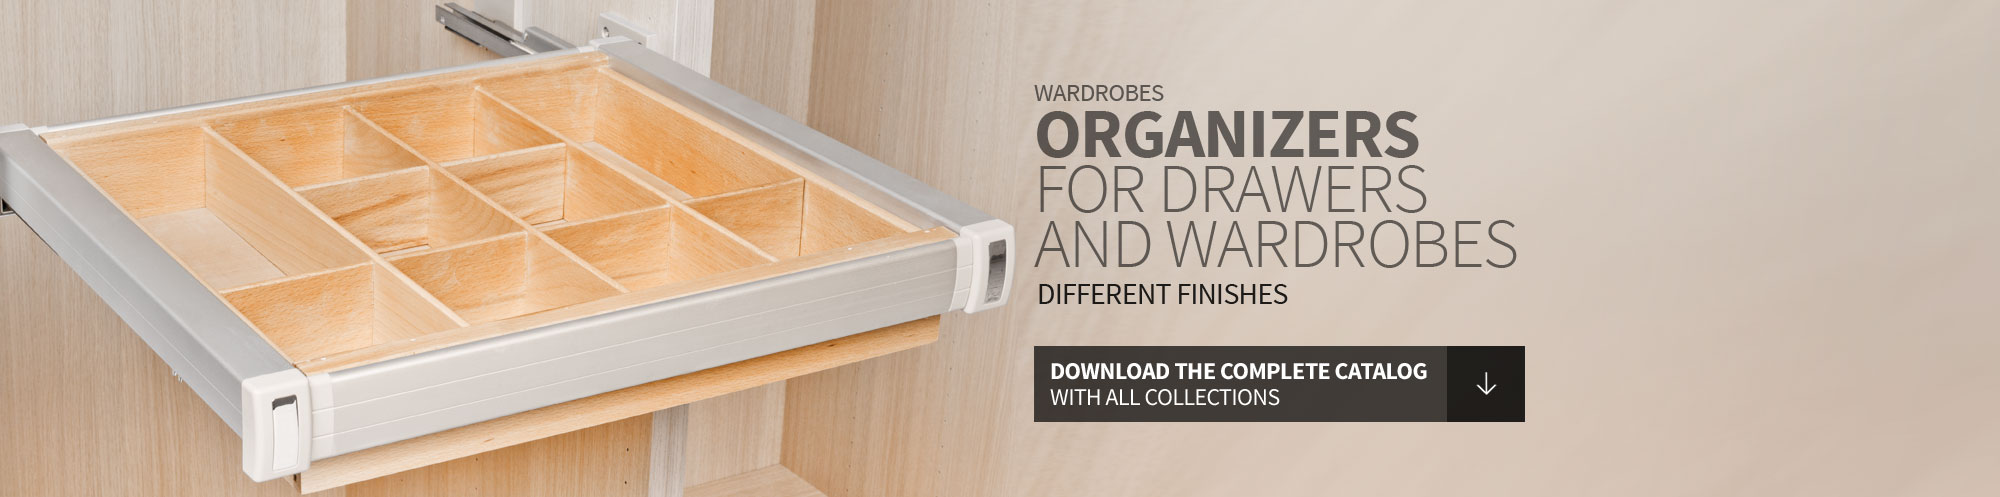 organizers for drawers